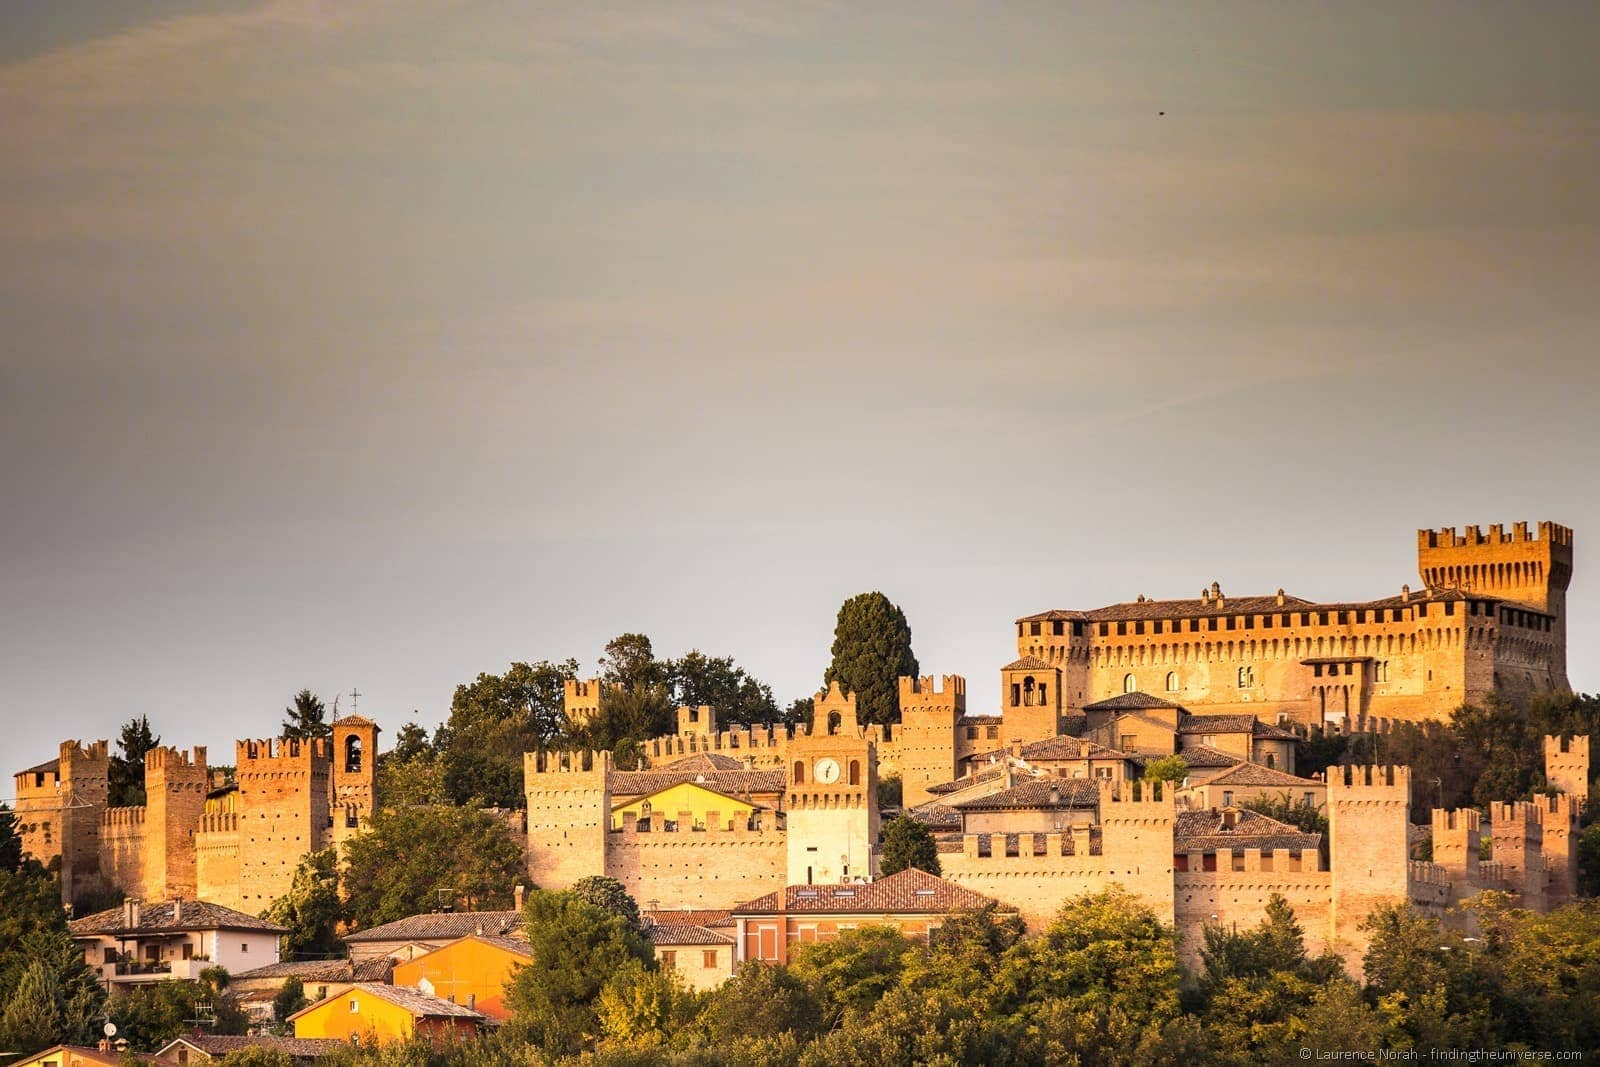 castello di gradara at sunset